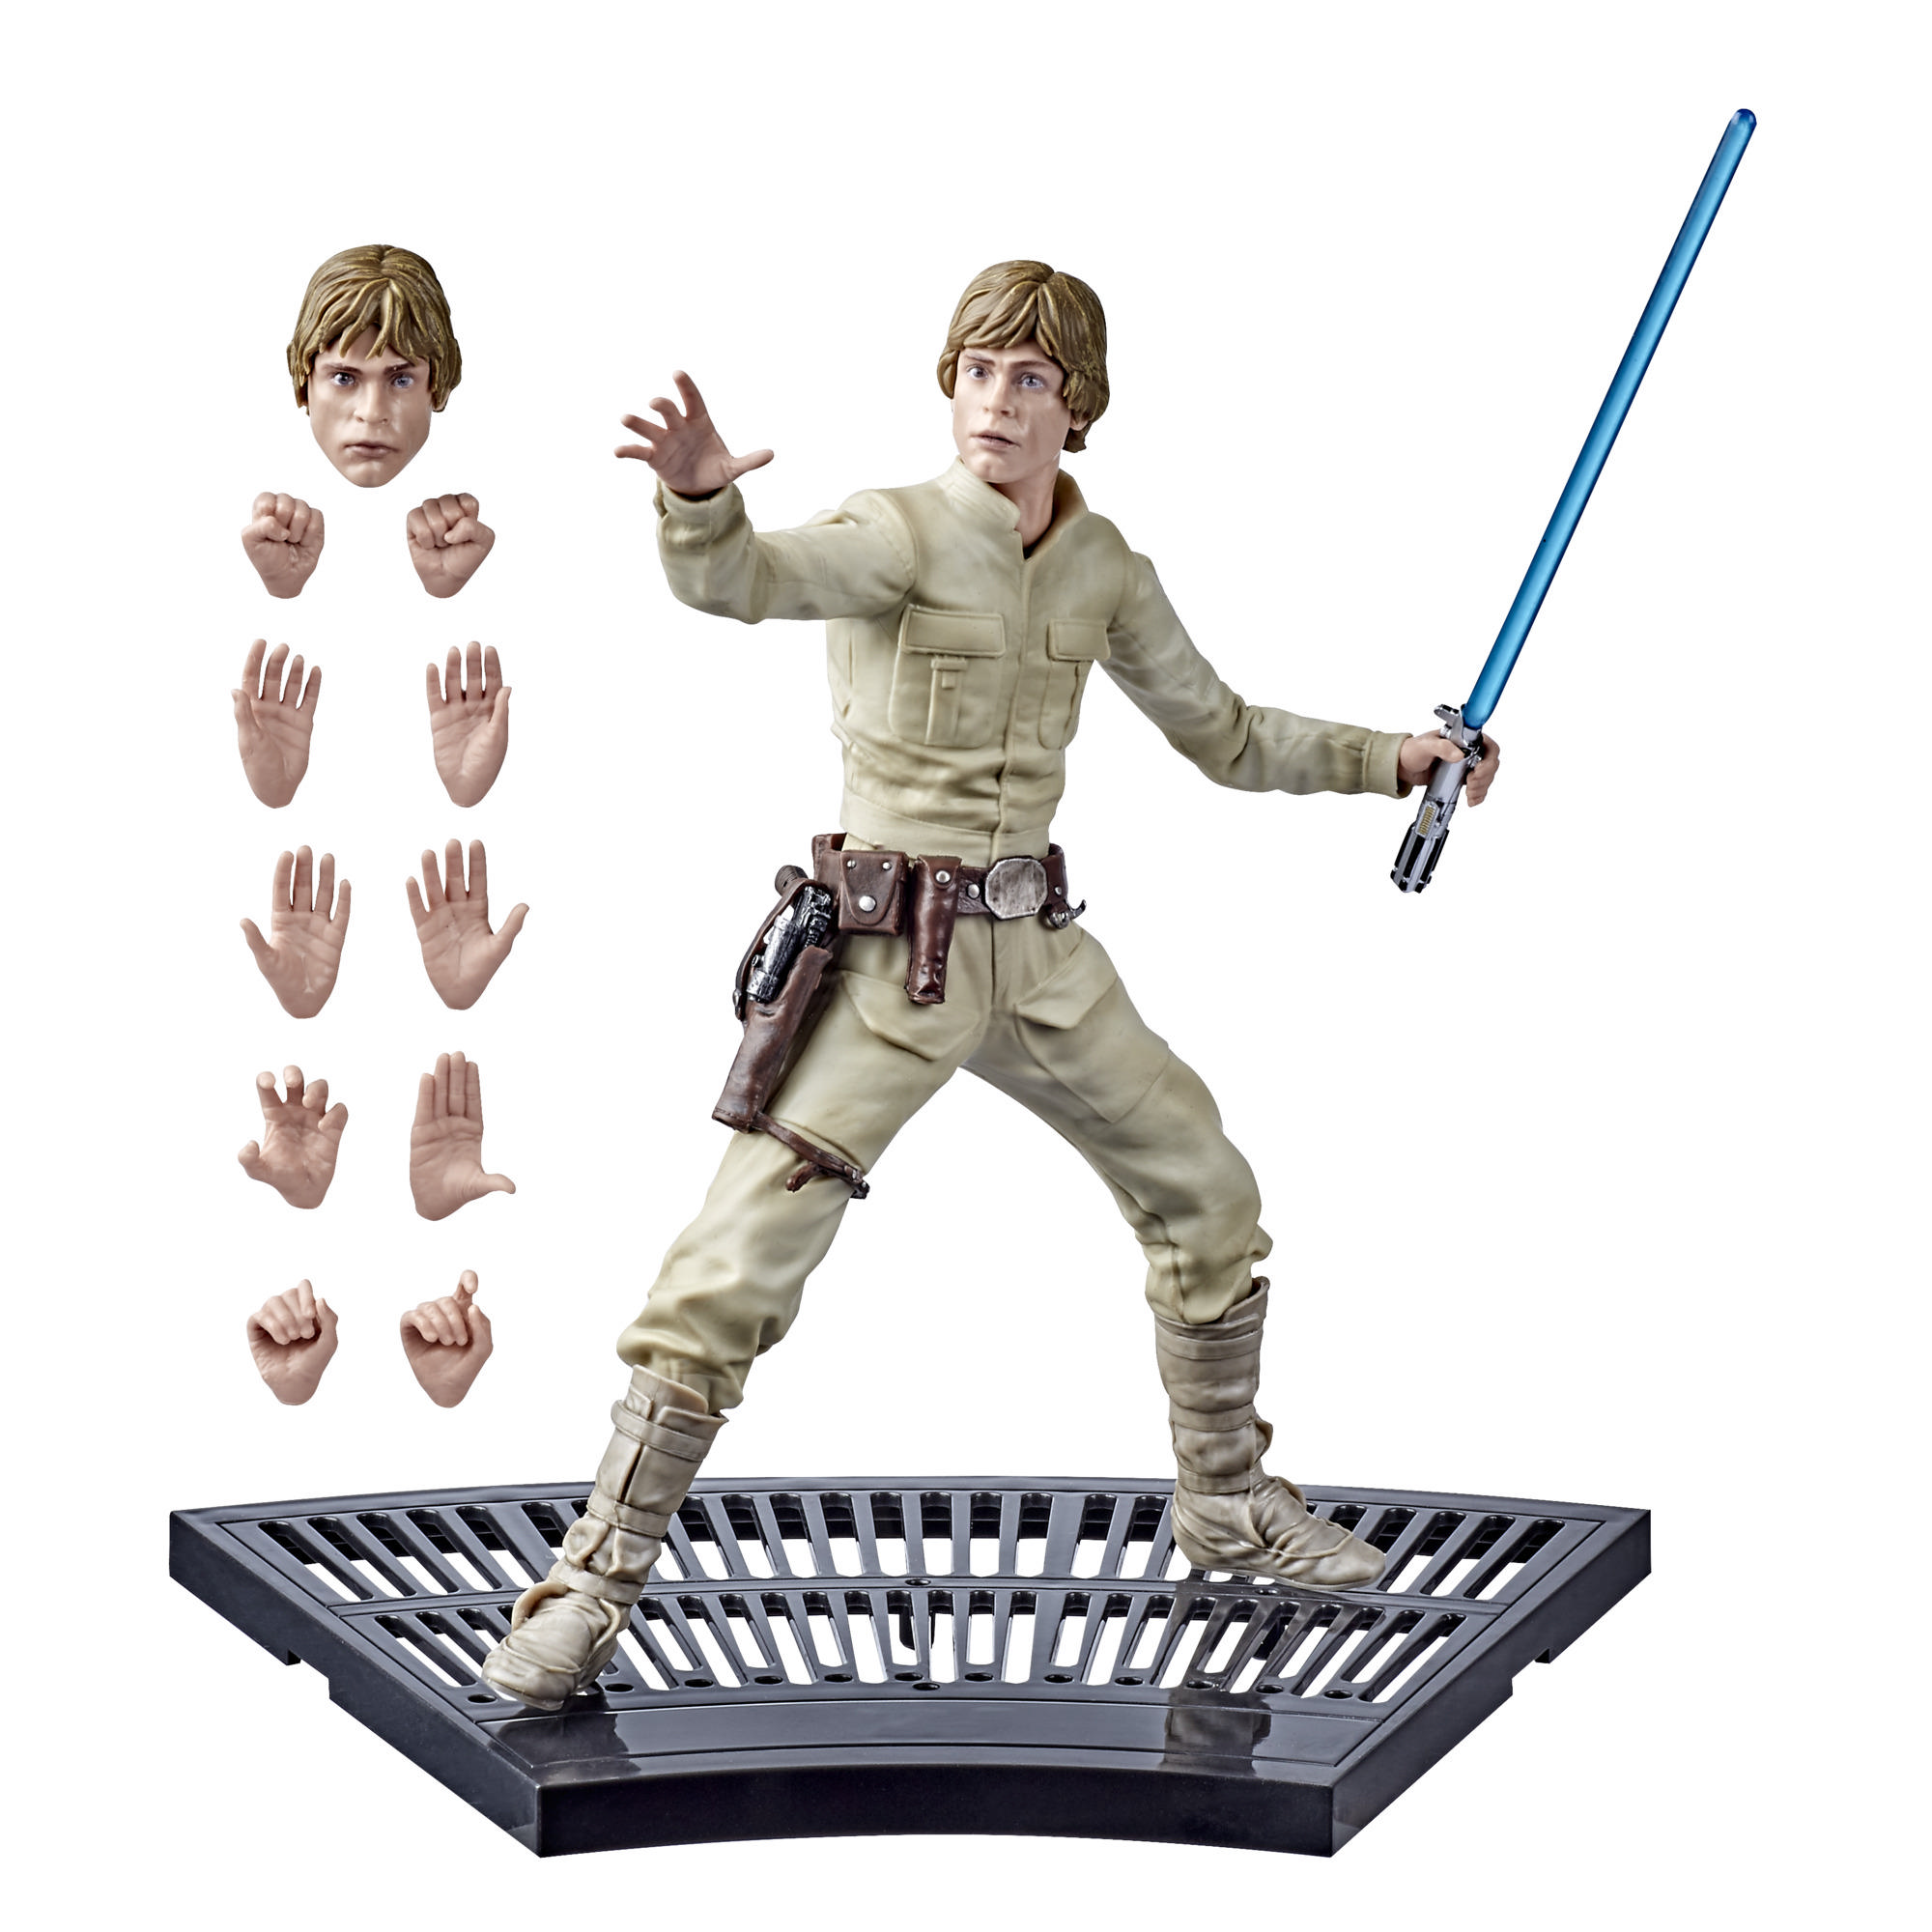 Star Wars The Black Series Hyperreal Star Wars: The Empire Strikes Back Luke Skywalker Toy, 8-inch Scale Action Figure